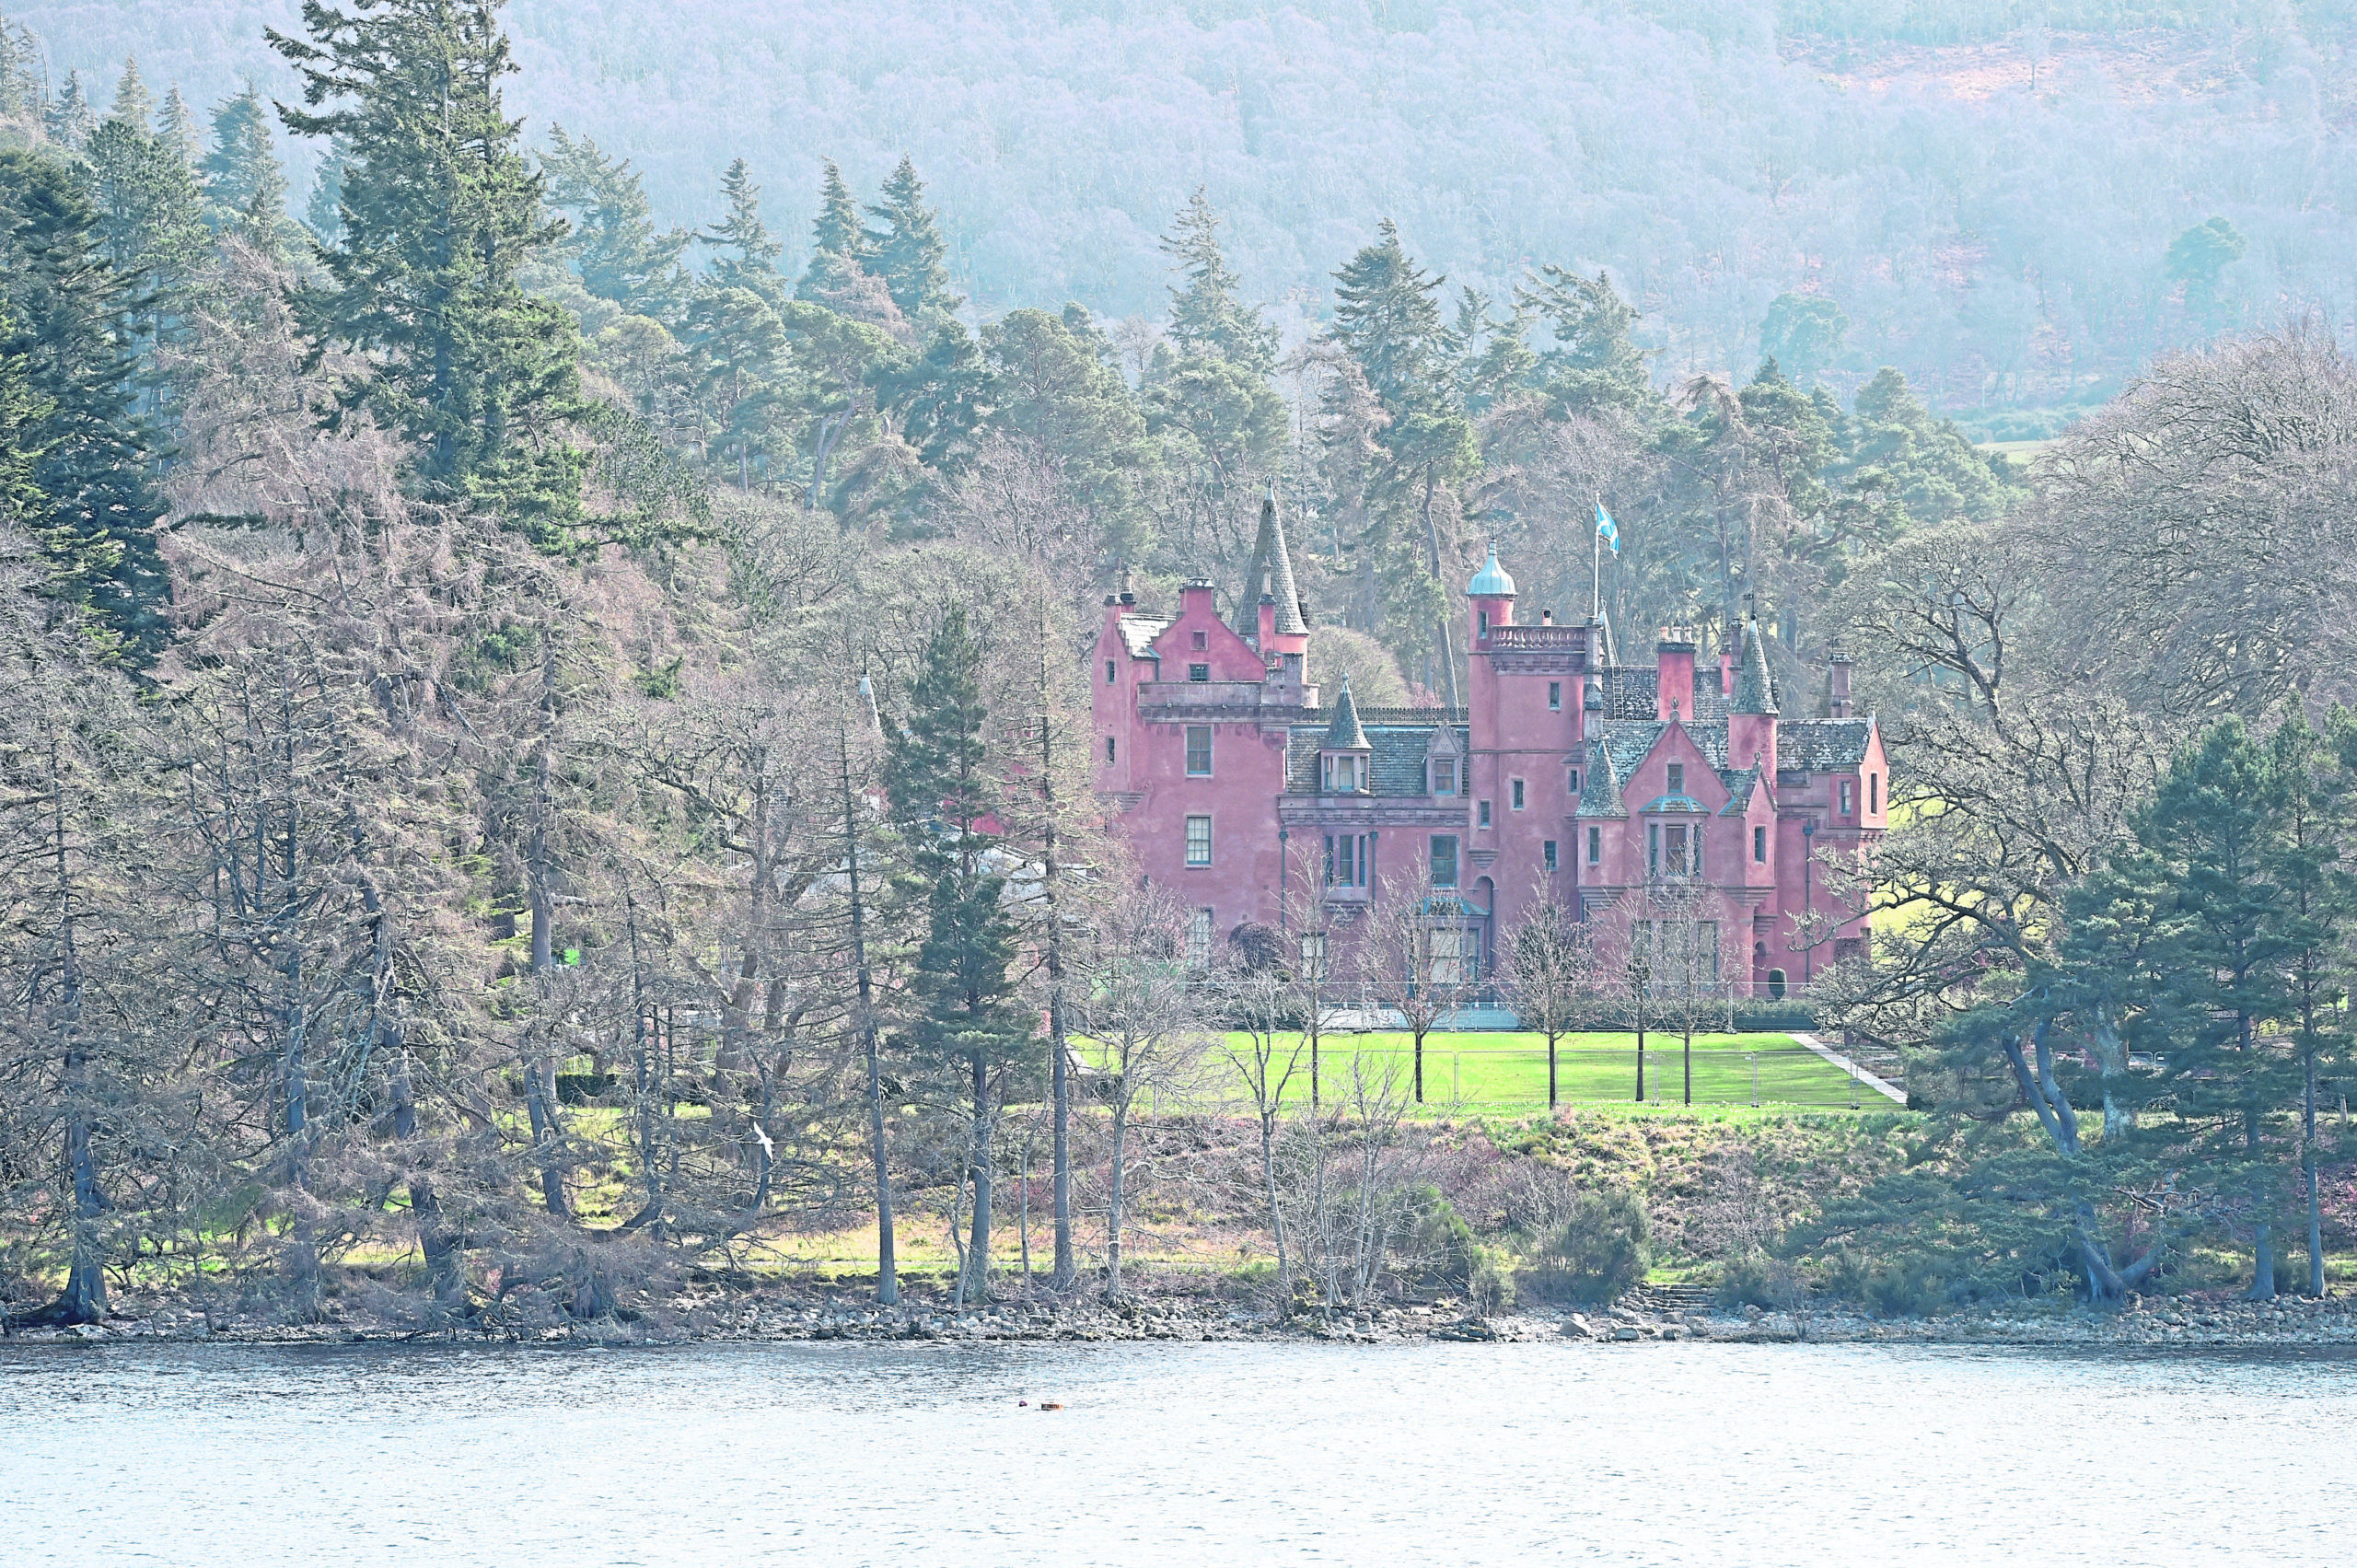 Aldourie Castle on the shores of Loch Ness near Dores where the owners are hoping to build a boathouse. Picture by Sandy McCook